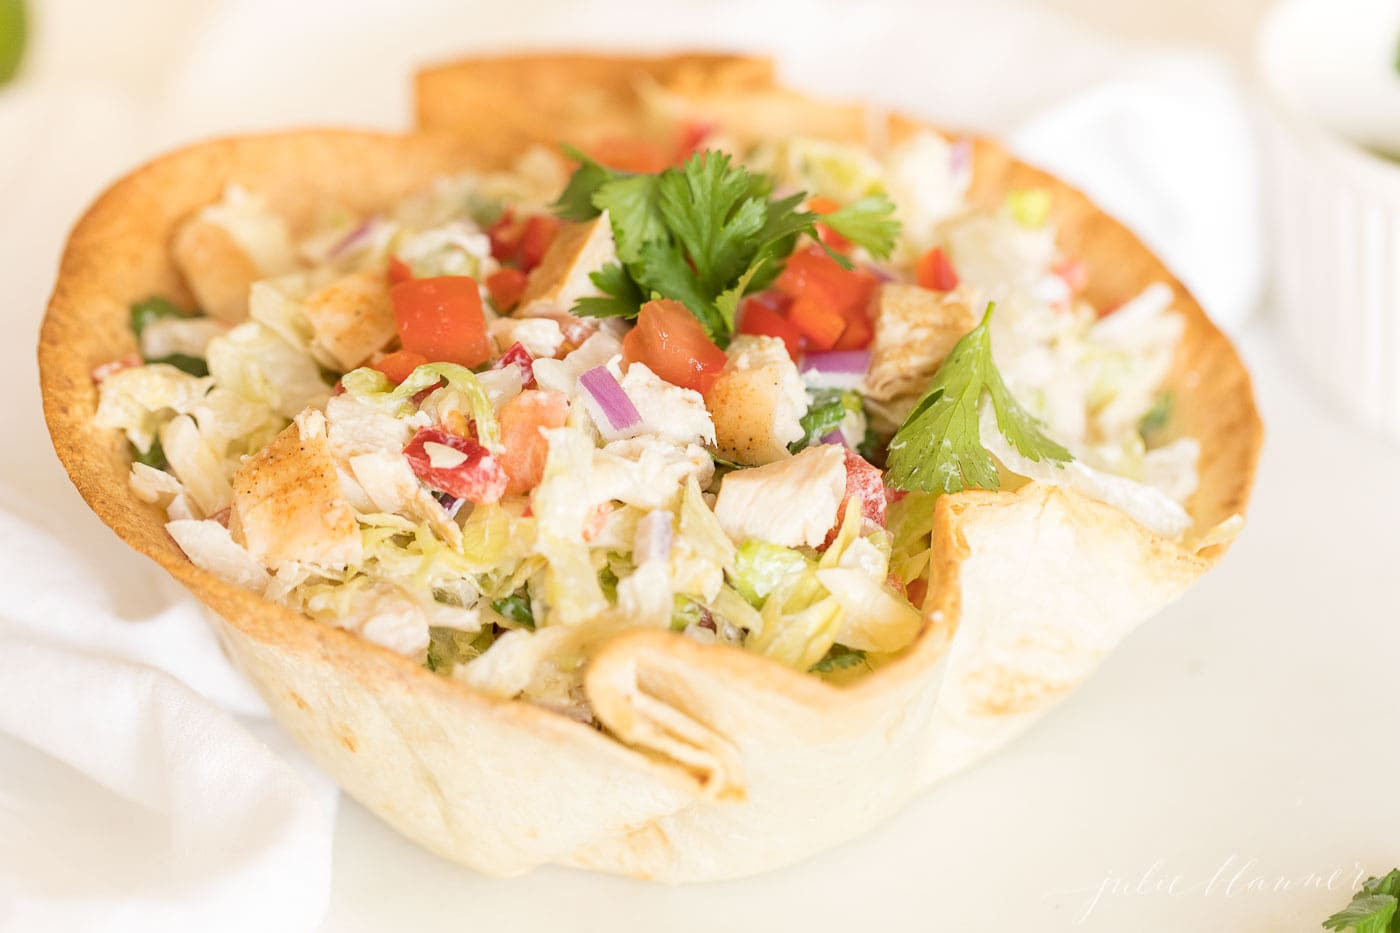 A chicken taco salad topped with tomatoes and cilantro in a tortilla bowl.